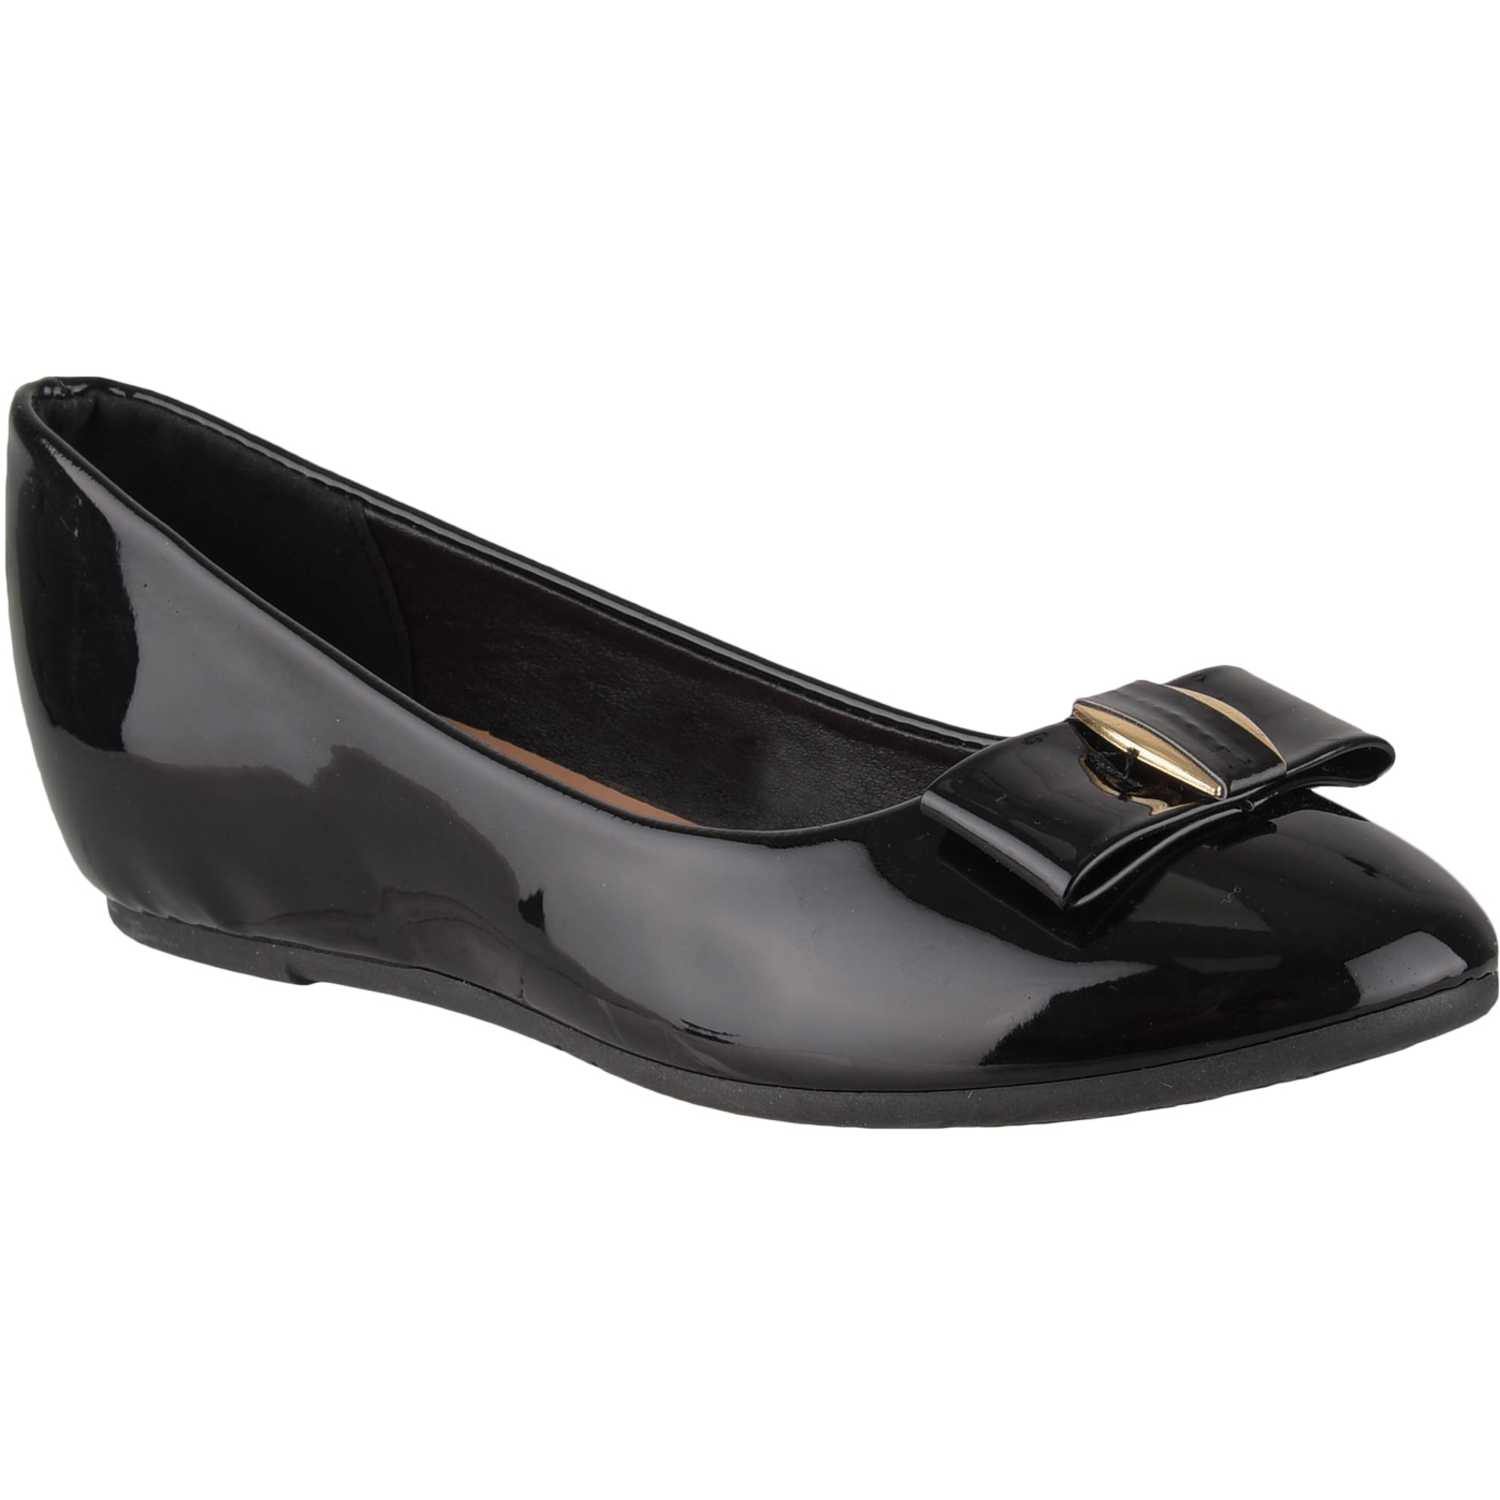 Platanitos cw 6821 Negro Estiletos y Pumps